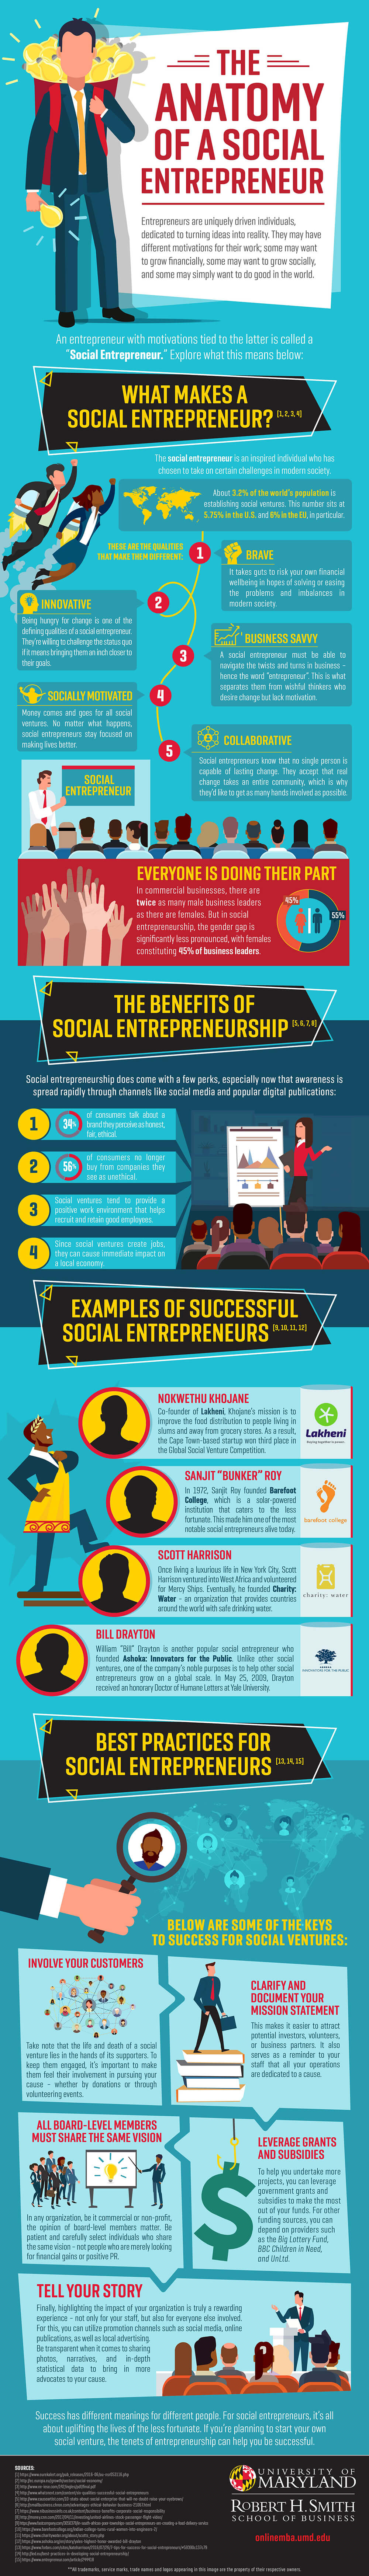 Umd Online Mba An Infographic About Social Entrepreneurship By The